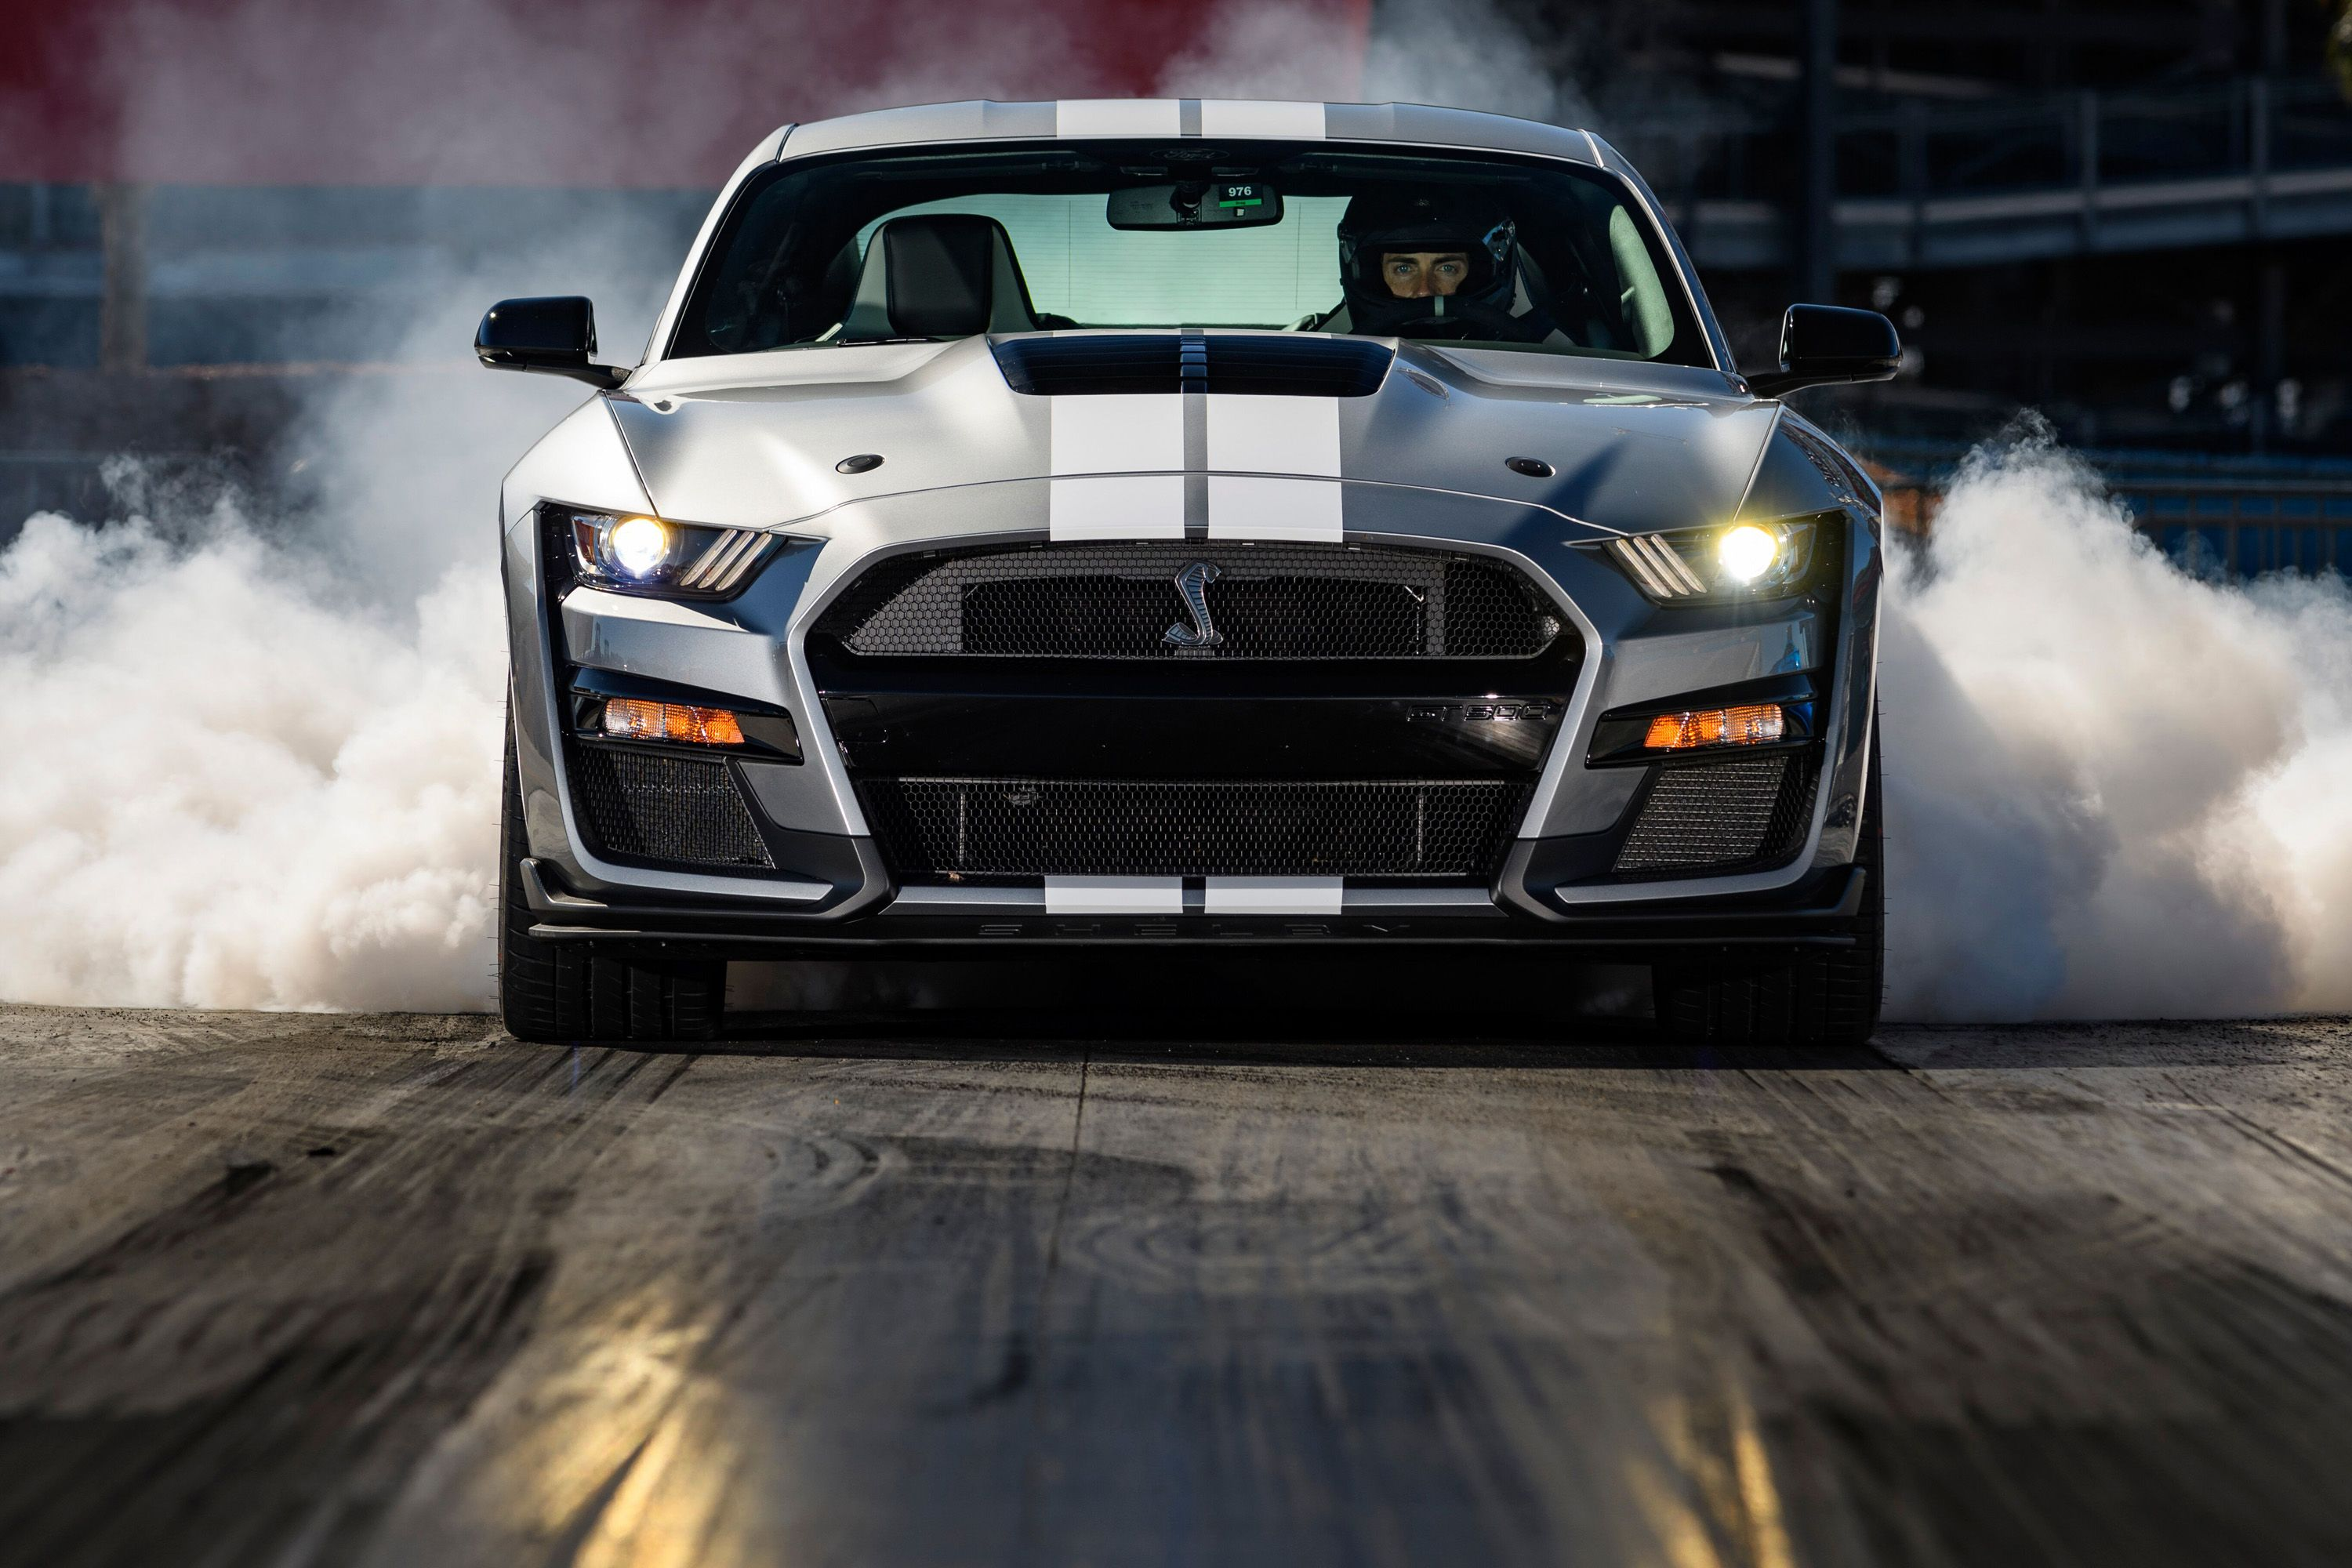 The 2020 Ford Mustang Shelby GT500 Makes 760 Horsepower Feel Normal